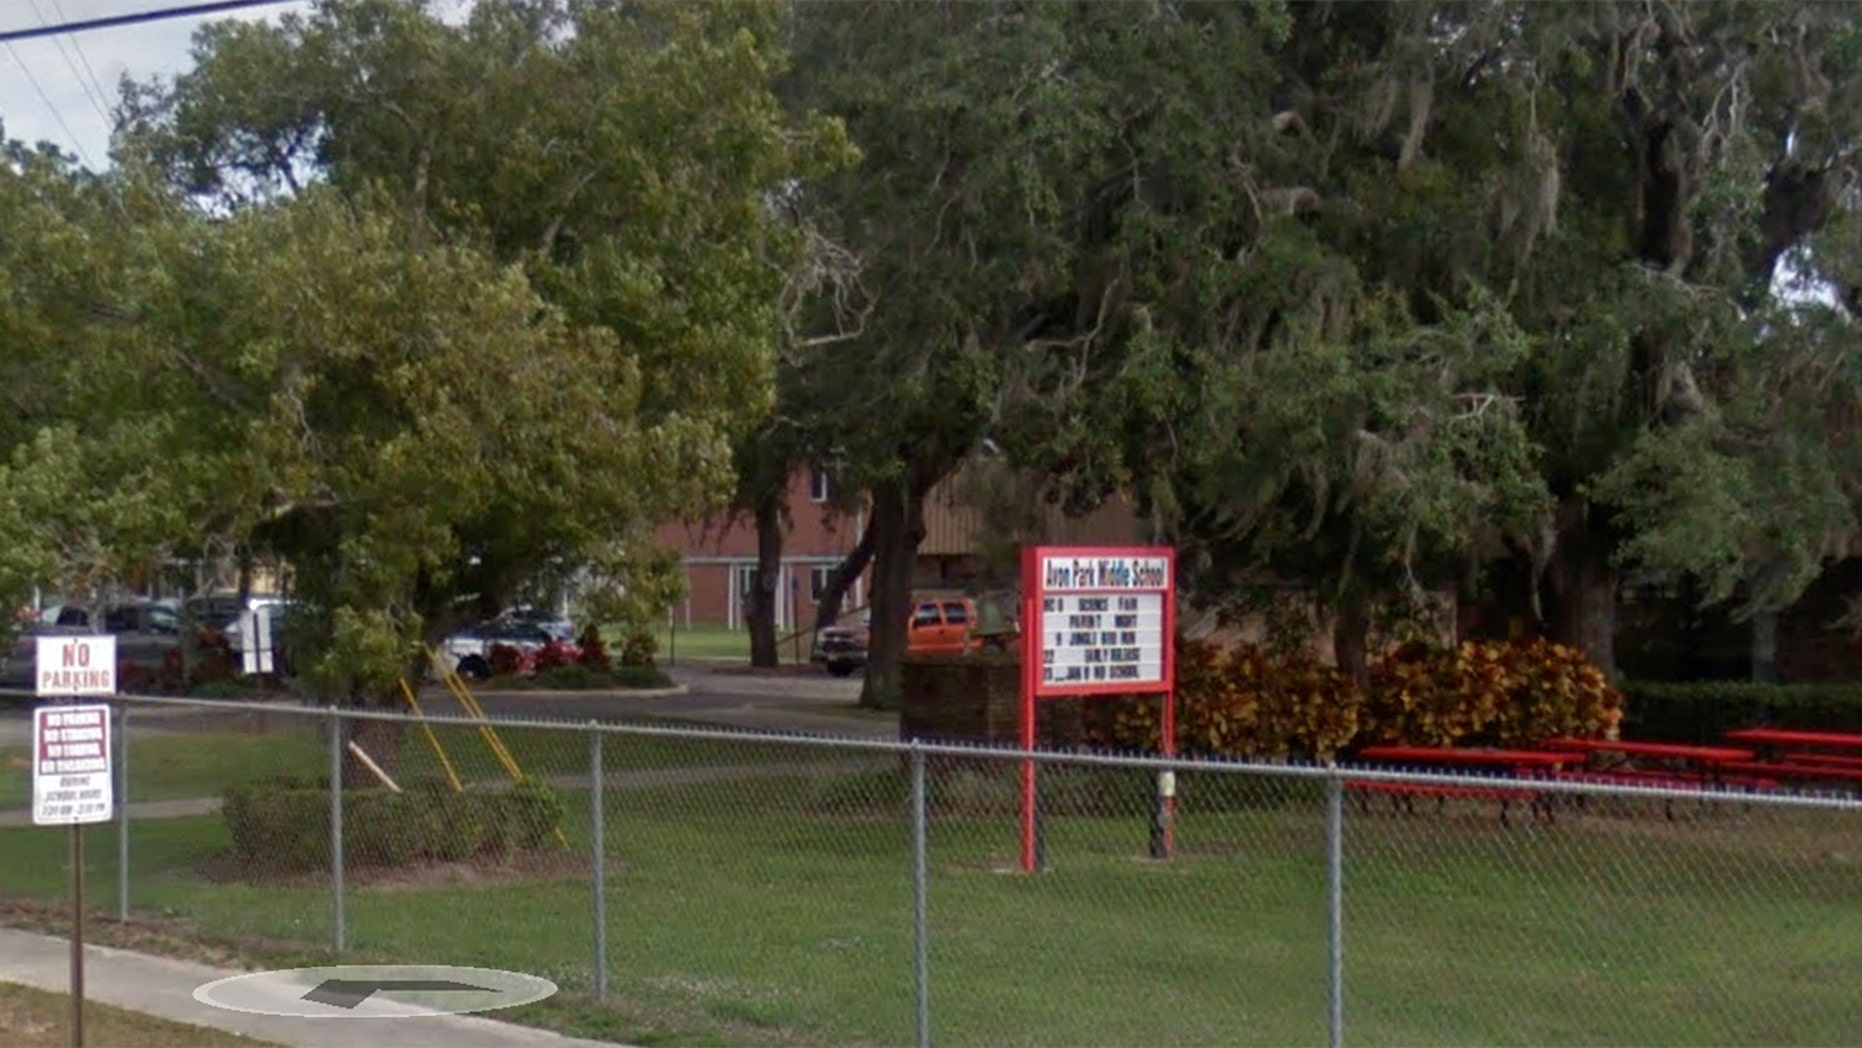 Two 14-year-old girls were arrested at Avon Park Middle School in Florida on Wednesday after a teacher discovered their alleged plans to kill nine people